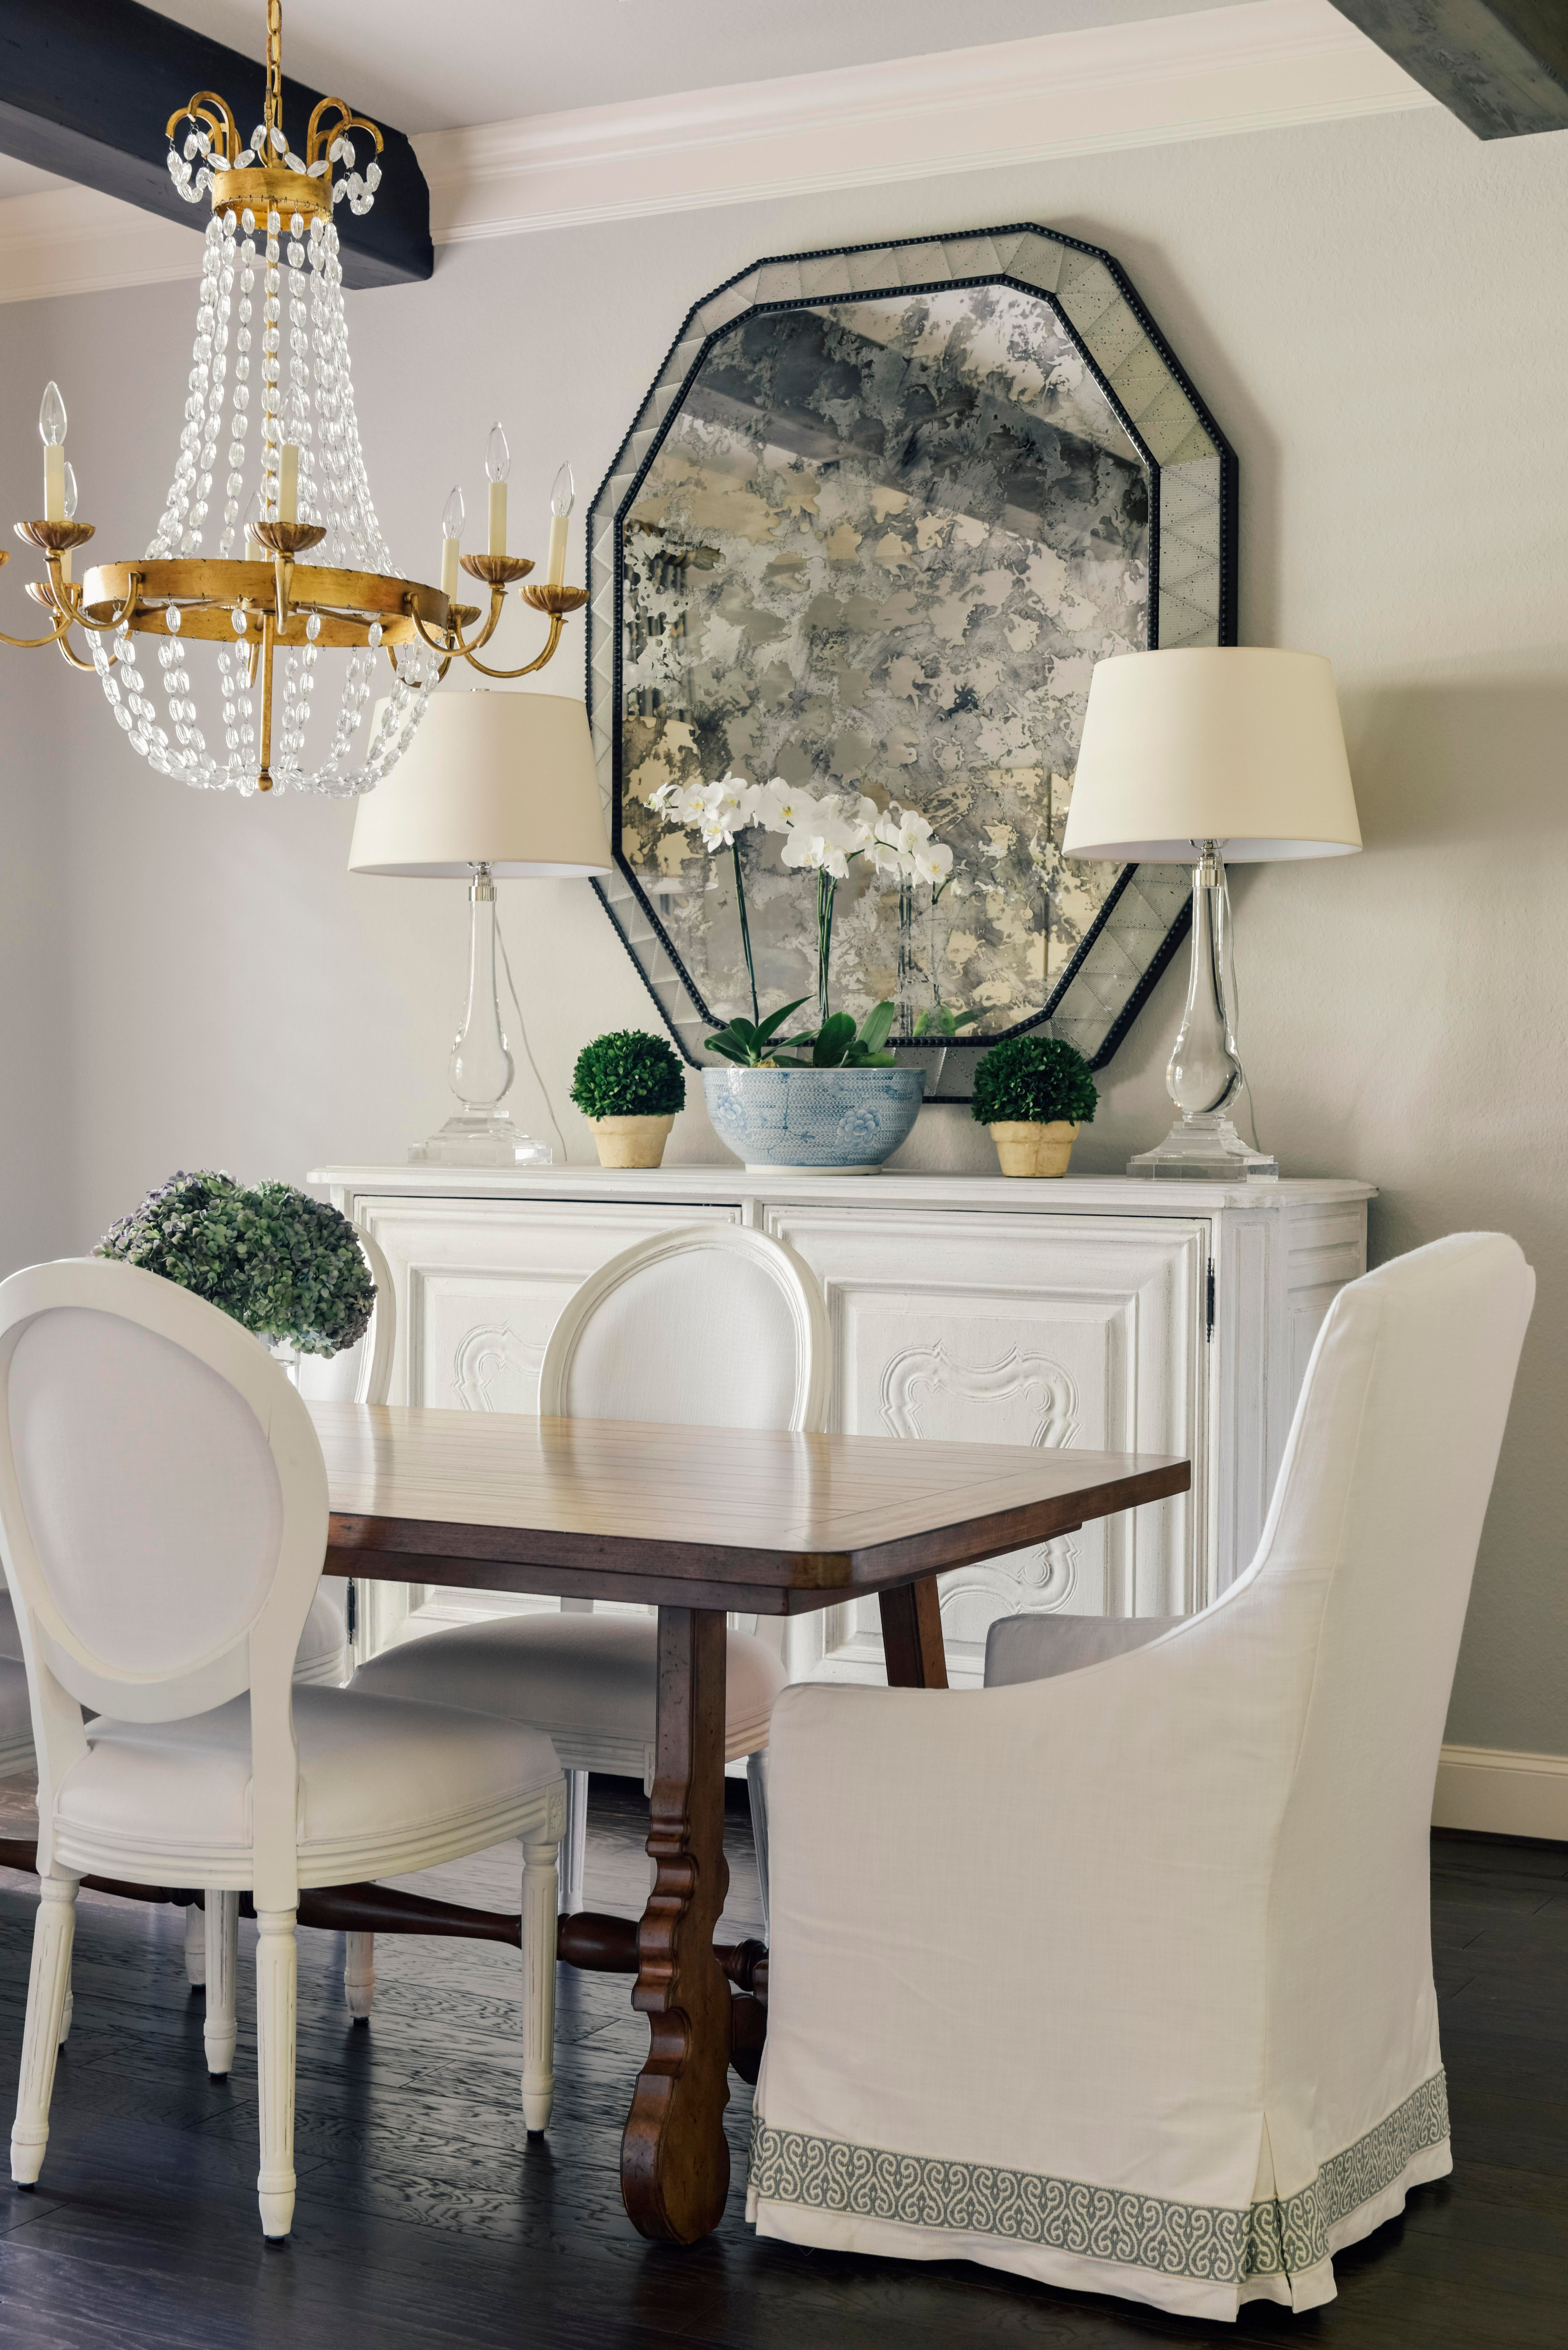 Merveilleux Houston Dining Room, French Country, Traditional, Antique Mirror, Louis  Chairs